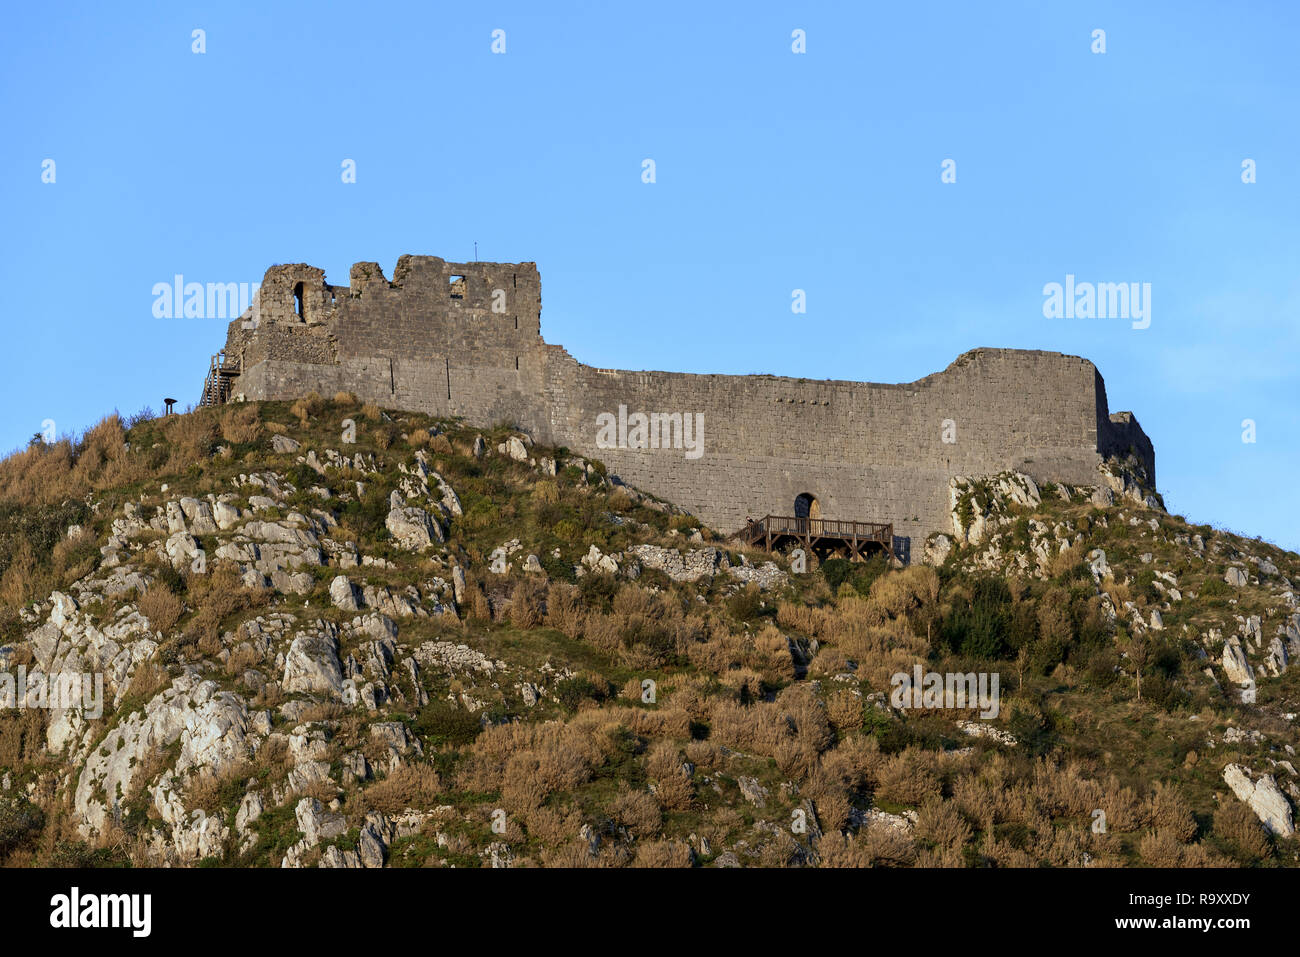 Ruins of the medieval Château de Montségur castle on hilltop, stronghold of the Cathars in the Ariège department, Occitanie, France - Stock Image